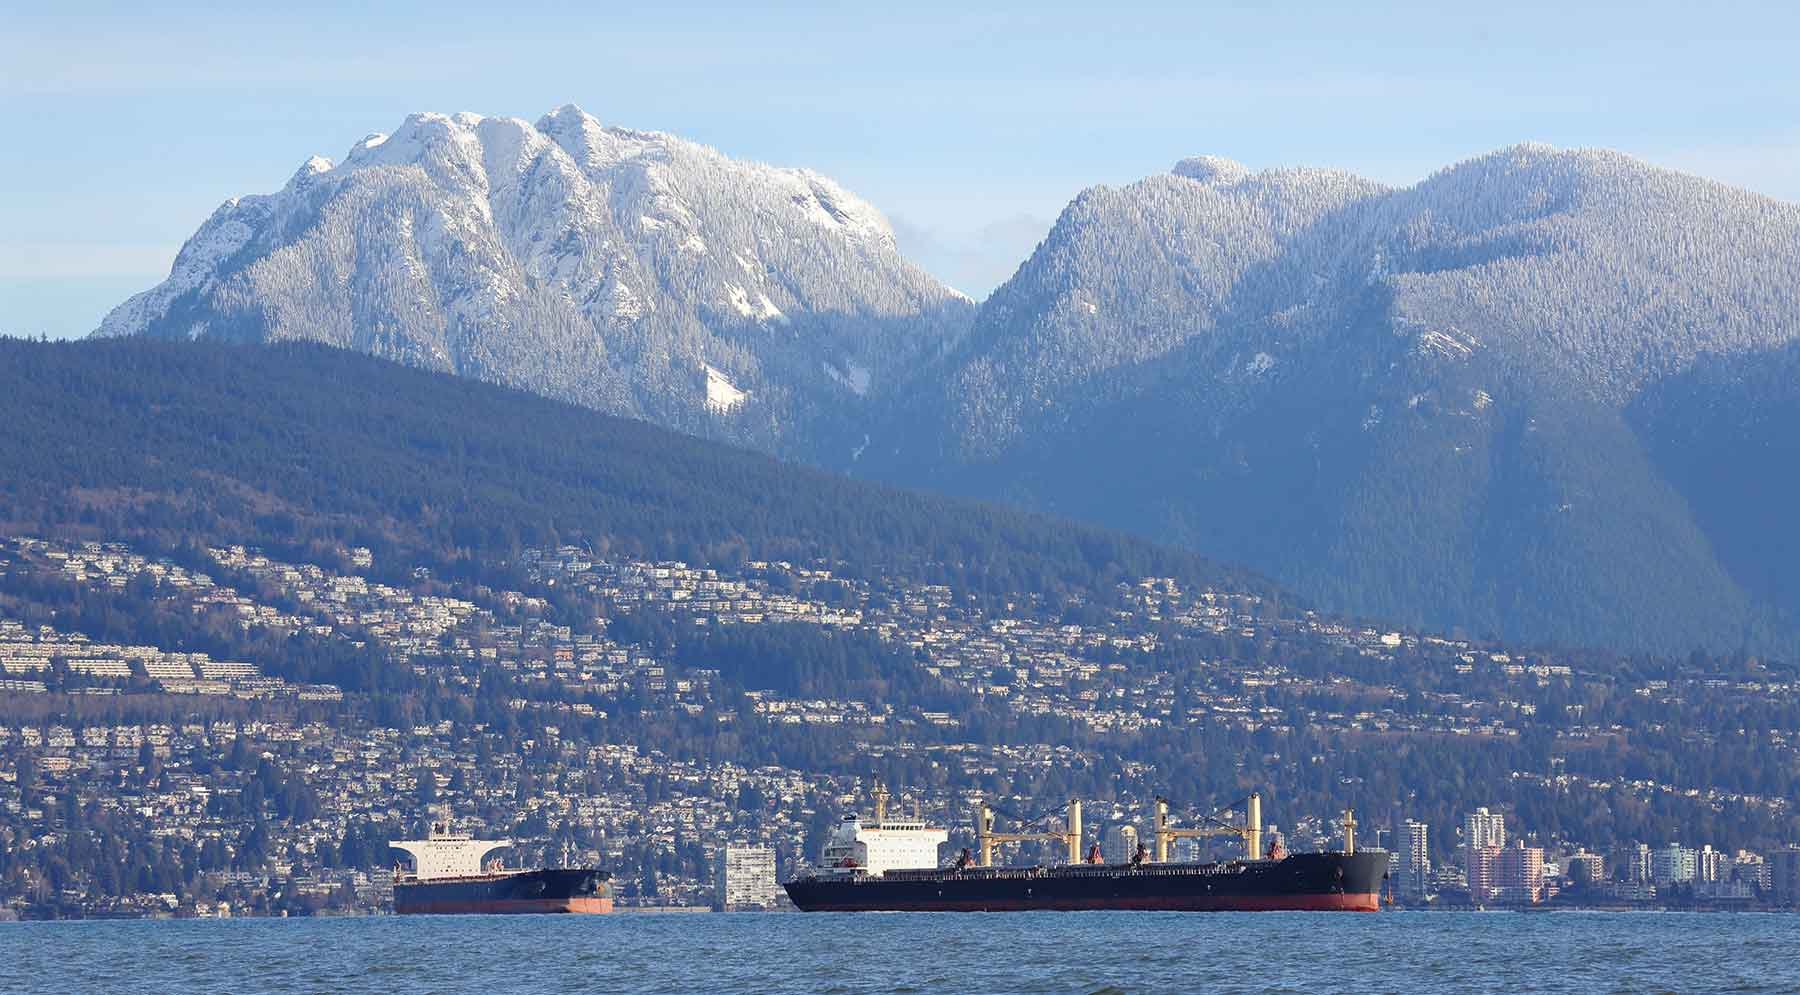 cargo vessel waiting in vancouver port with mountains in the background